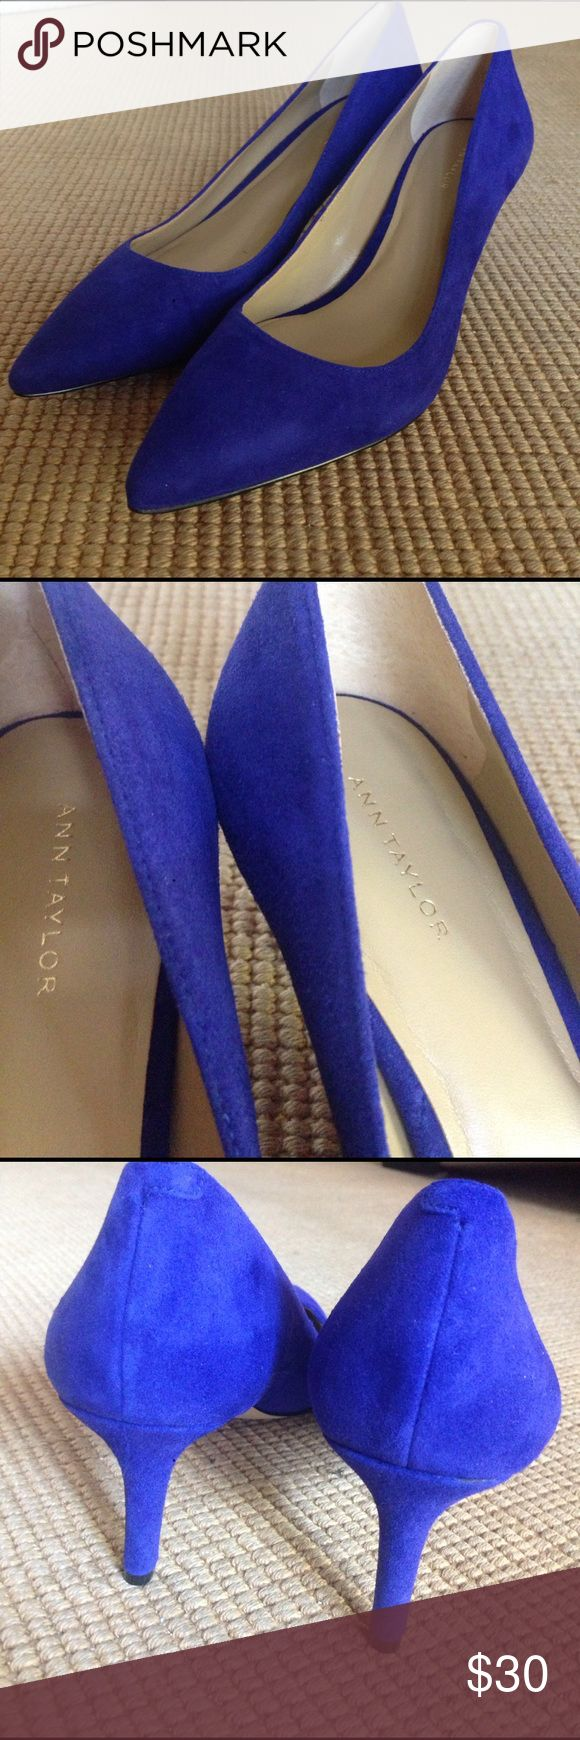 Ann Taylor (not Loft) Blue suede pumps 7 New, never worn, will arrive in the original box- gorgeous shoes, unfortunately I can't wear heels anymore Ann Taylor Shoes Heels